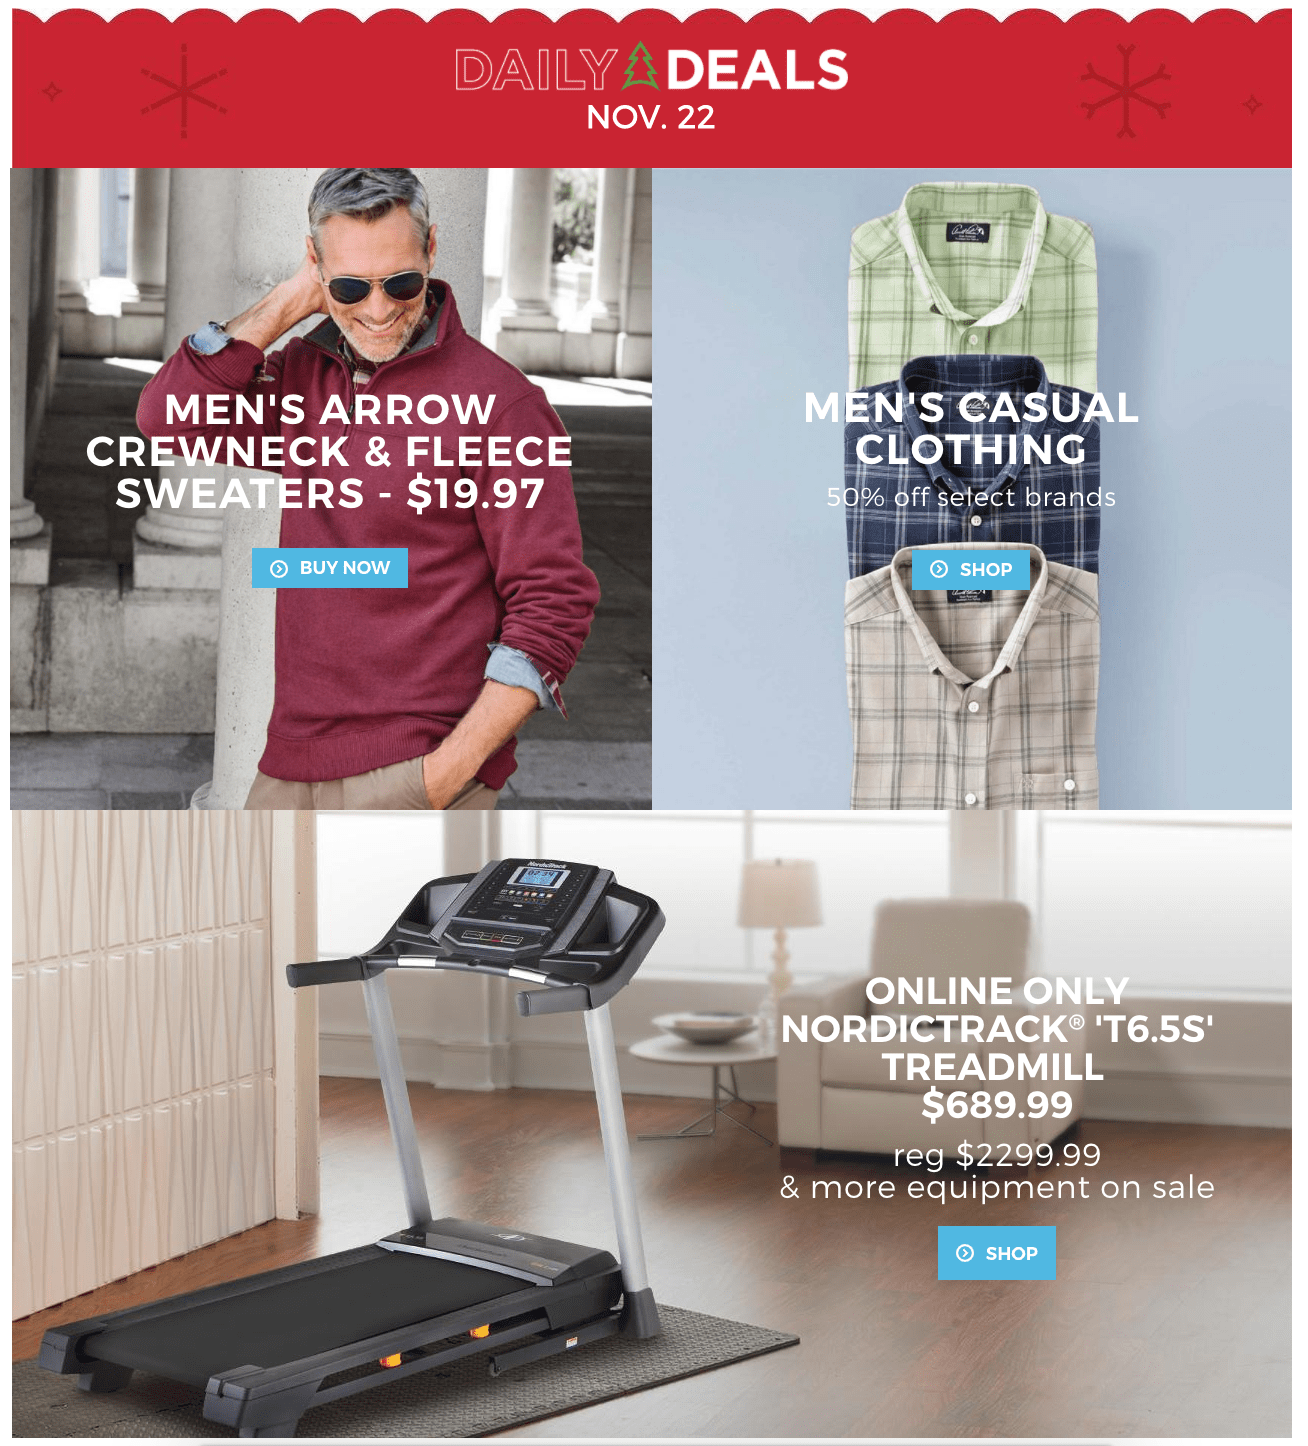 Sears Canada Daily Deals: Save $210 Off NordicTrack T6.5S Treadmill & Other Fitness Equipment + 50% Off Men's Casual Clothing + $19.97 Sweaters